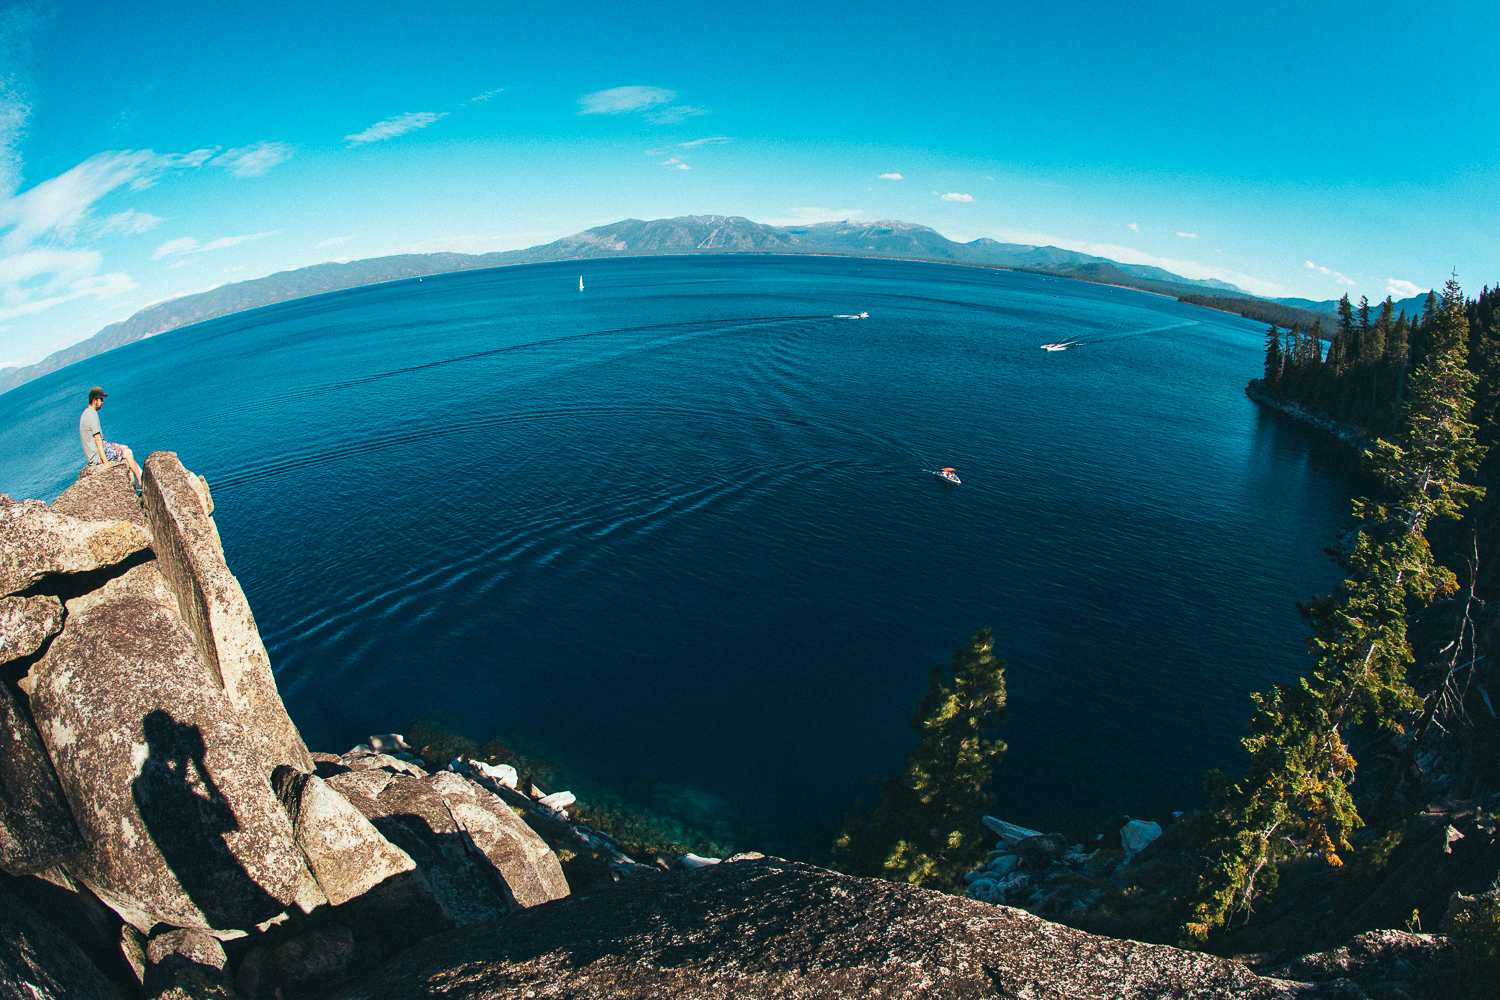 Even though I lived all over Tahoe from 1991-2006, I had never been down to the shore of DL Bliss state park. Maybe since I'm getting more comfortable with heights it makes sense now.